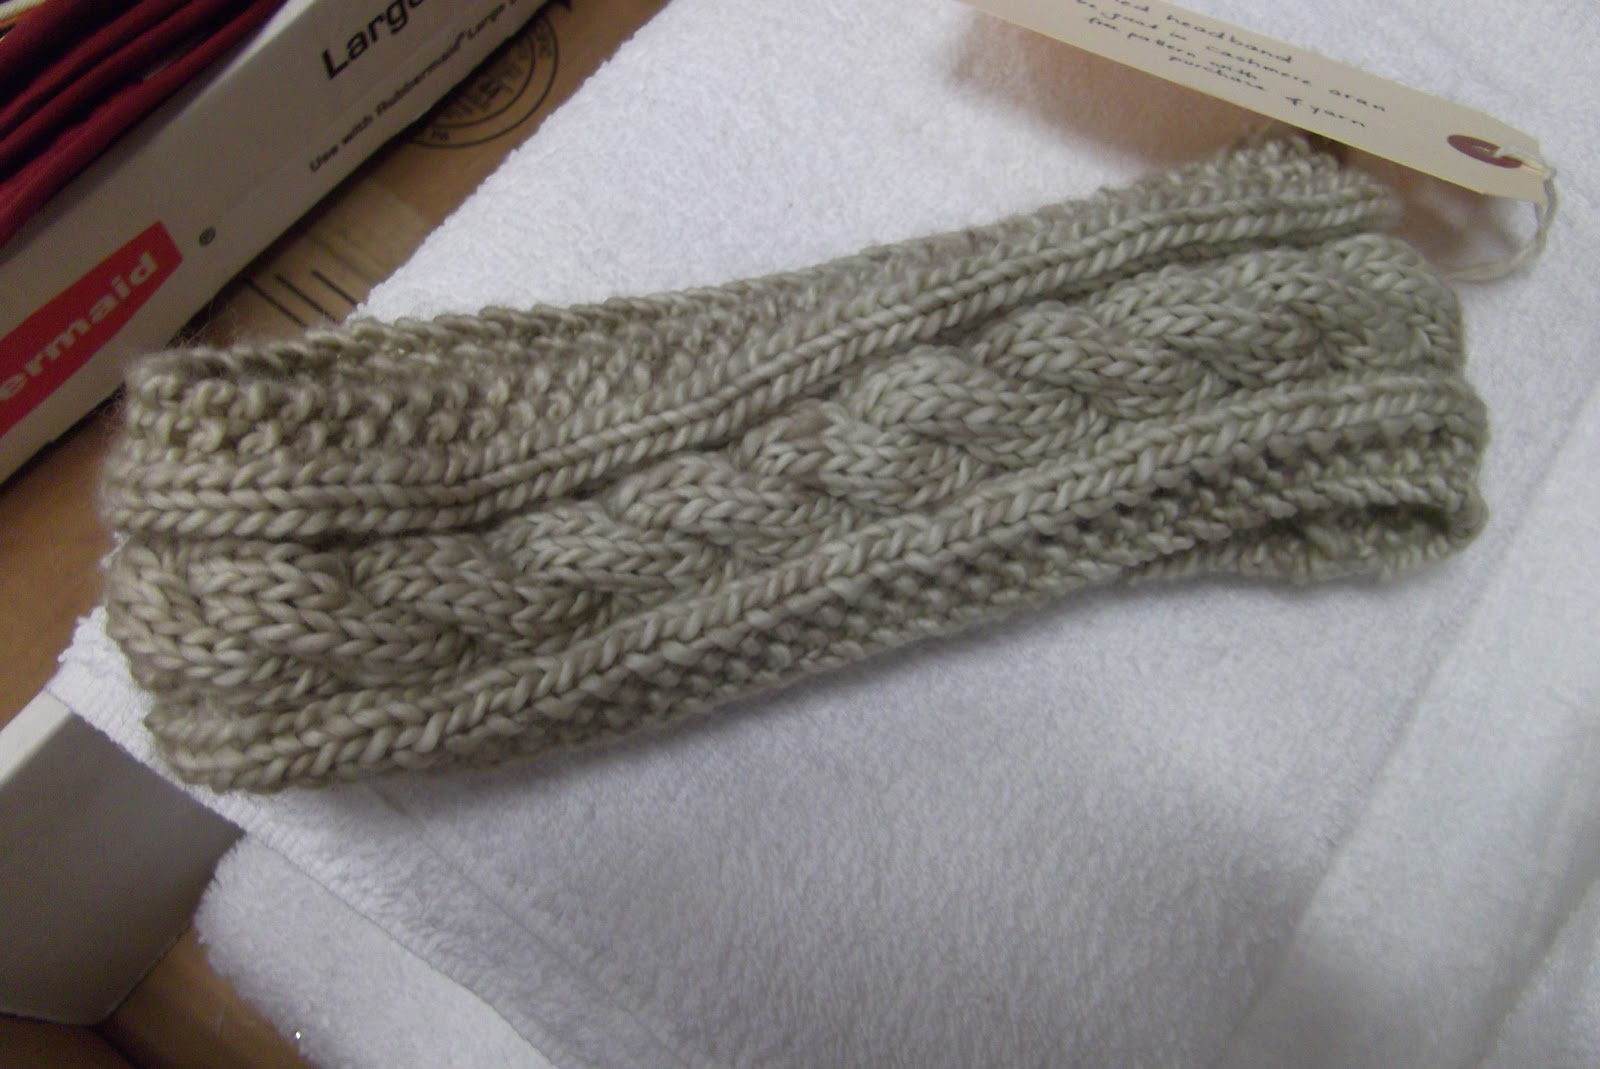 Knitting Instructions : Cable Knit Headband Patterns A Knitting Blog